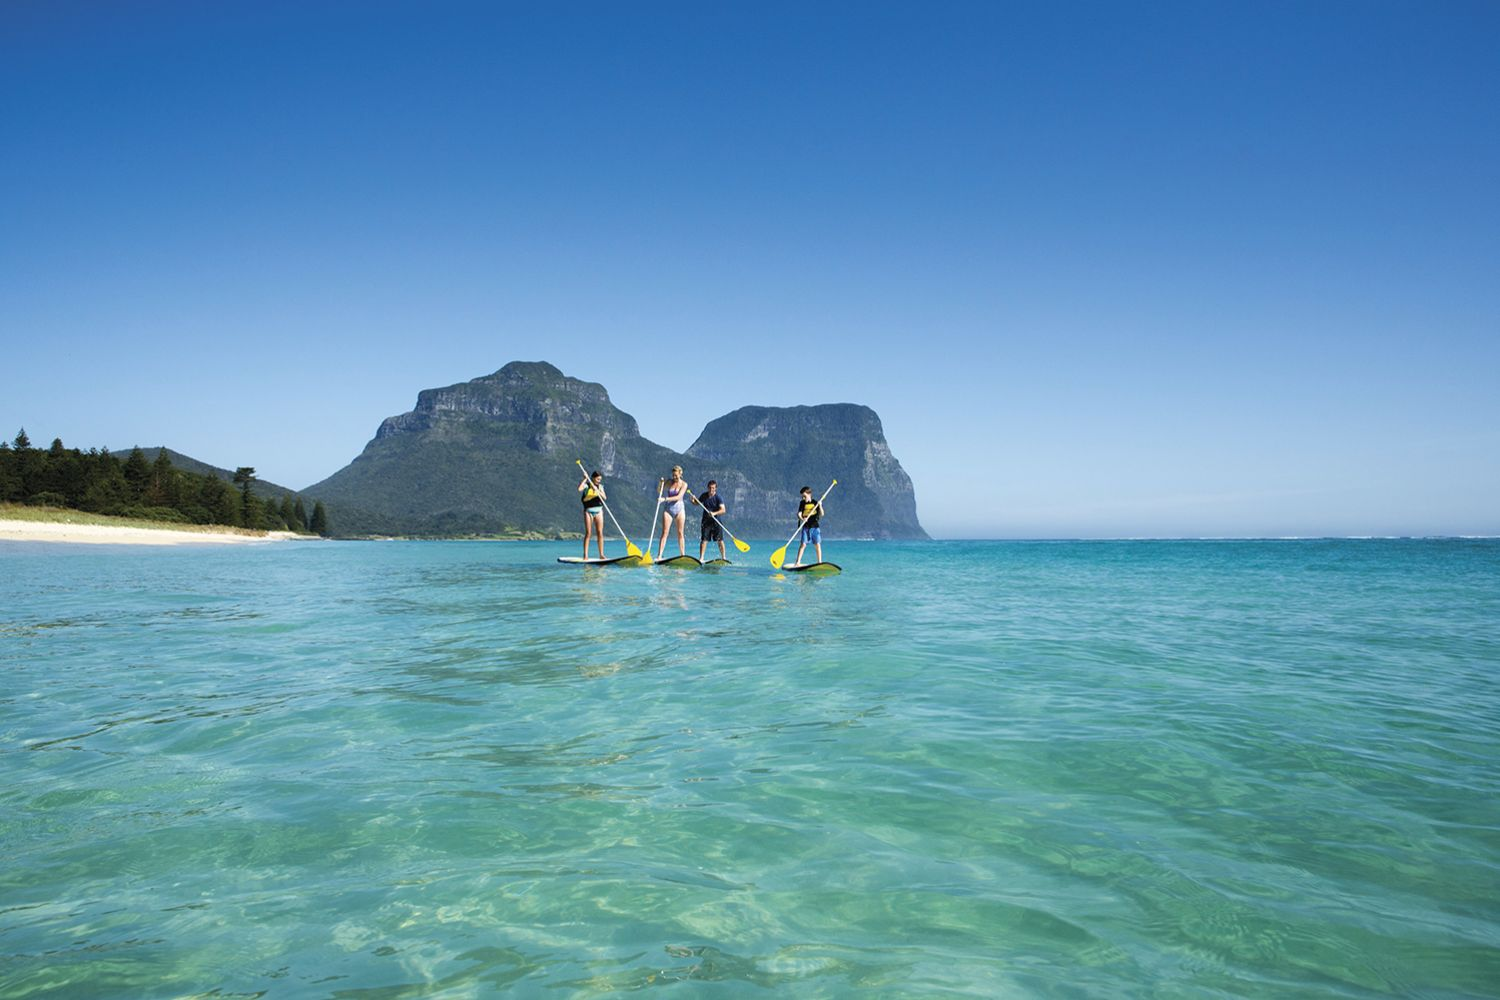 Family stand-up paddleboarding at Lagoon Beach on Lord Howe Island with Mount Gower and Mount Lidgbird as the backdrop